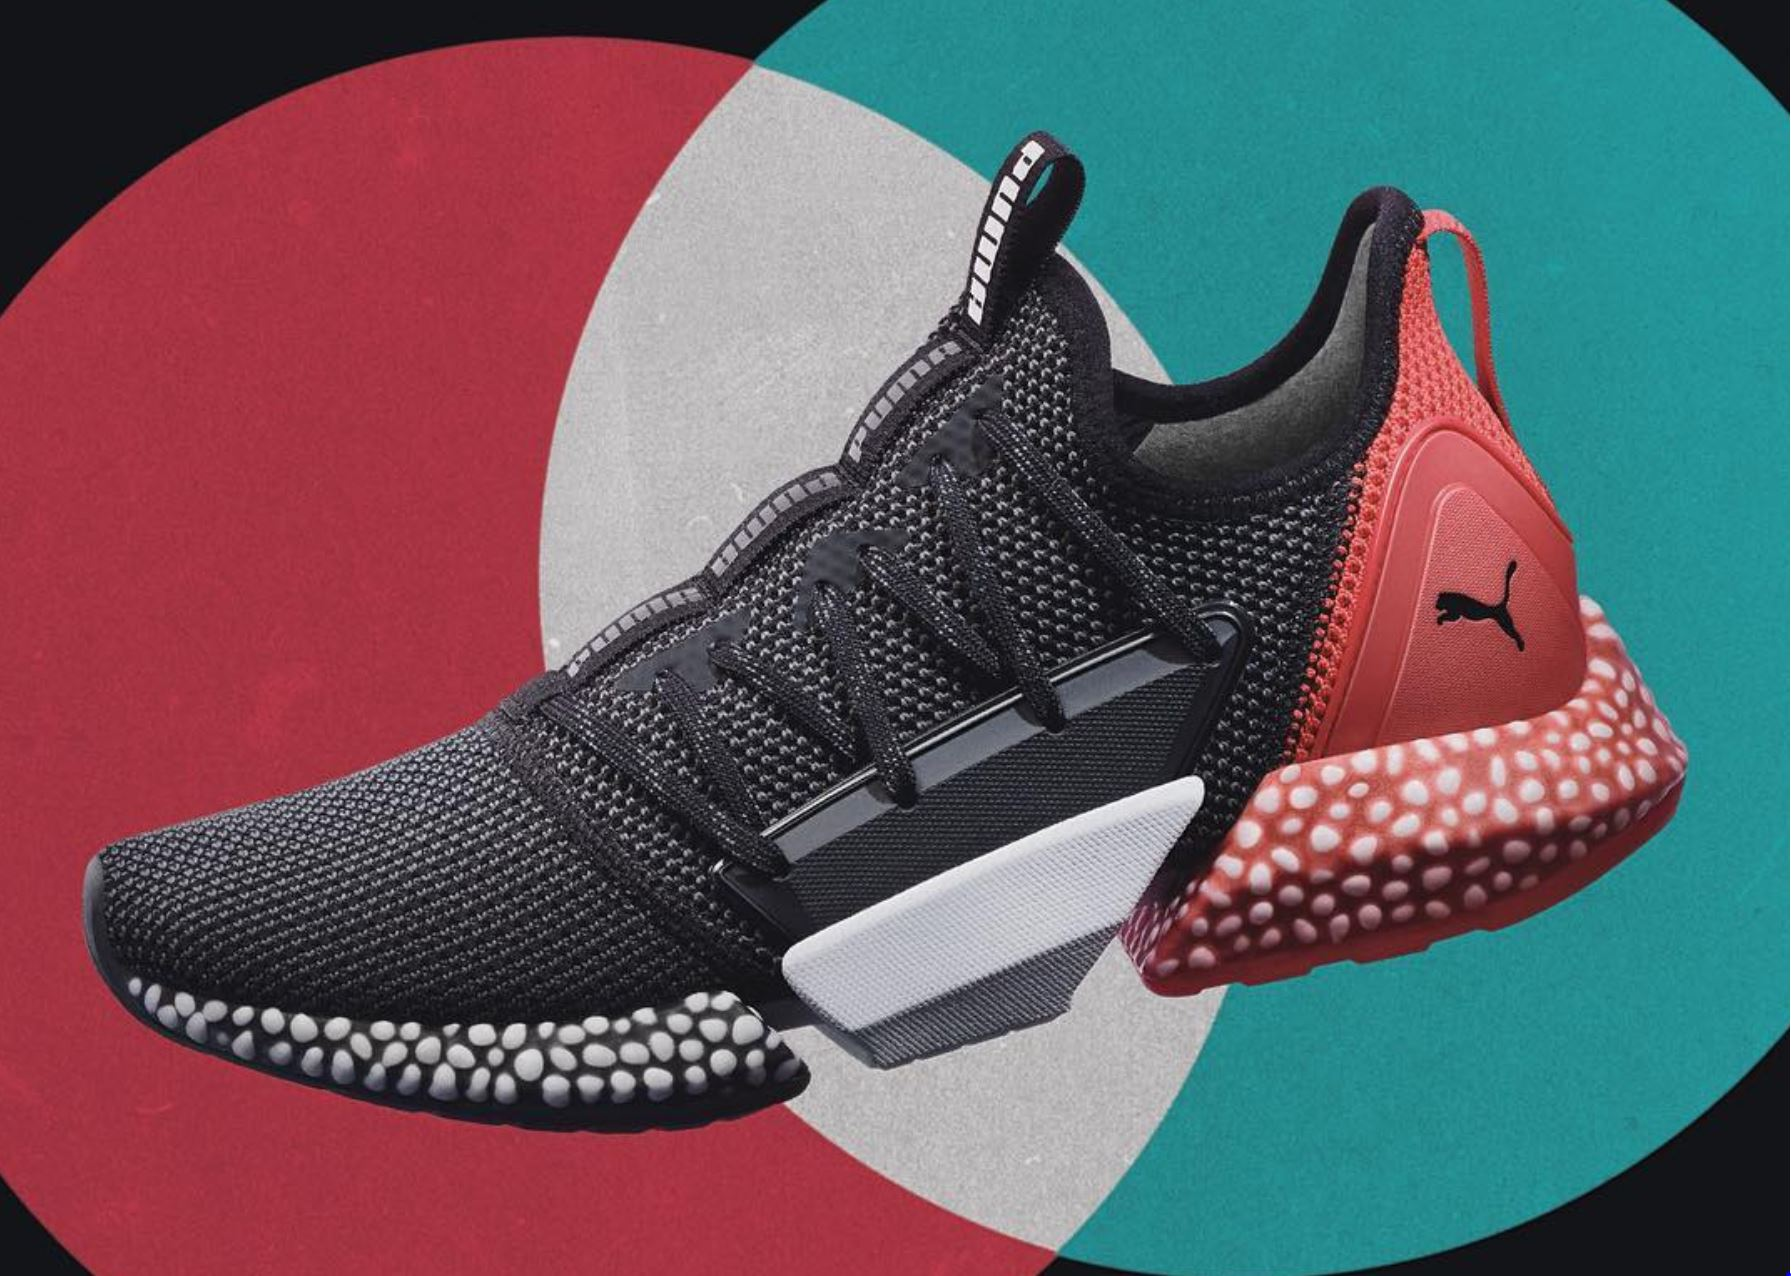 The Puma Hybrid Rocket Has Landed, With NRGY Cushioning